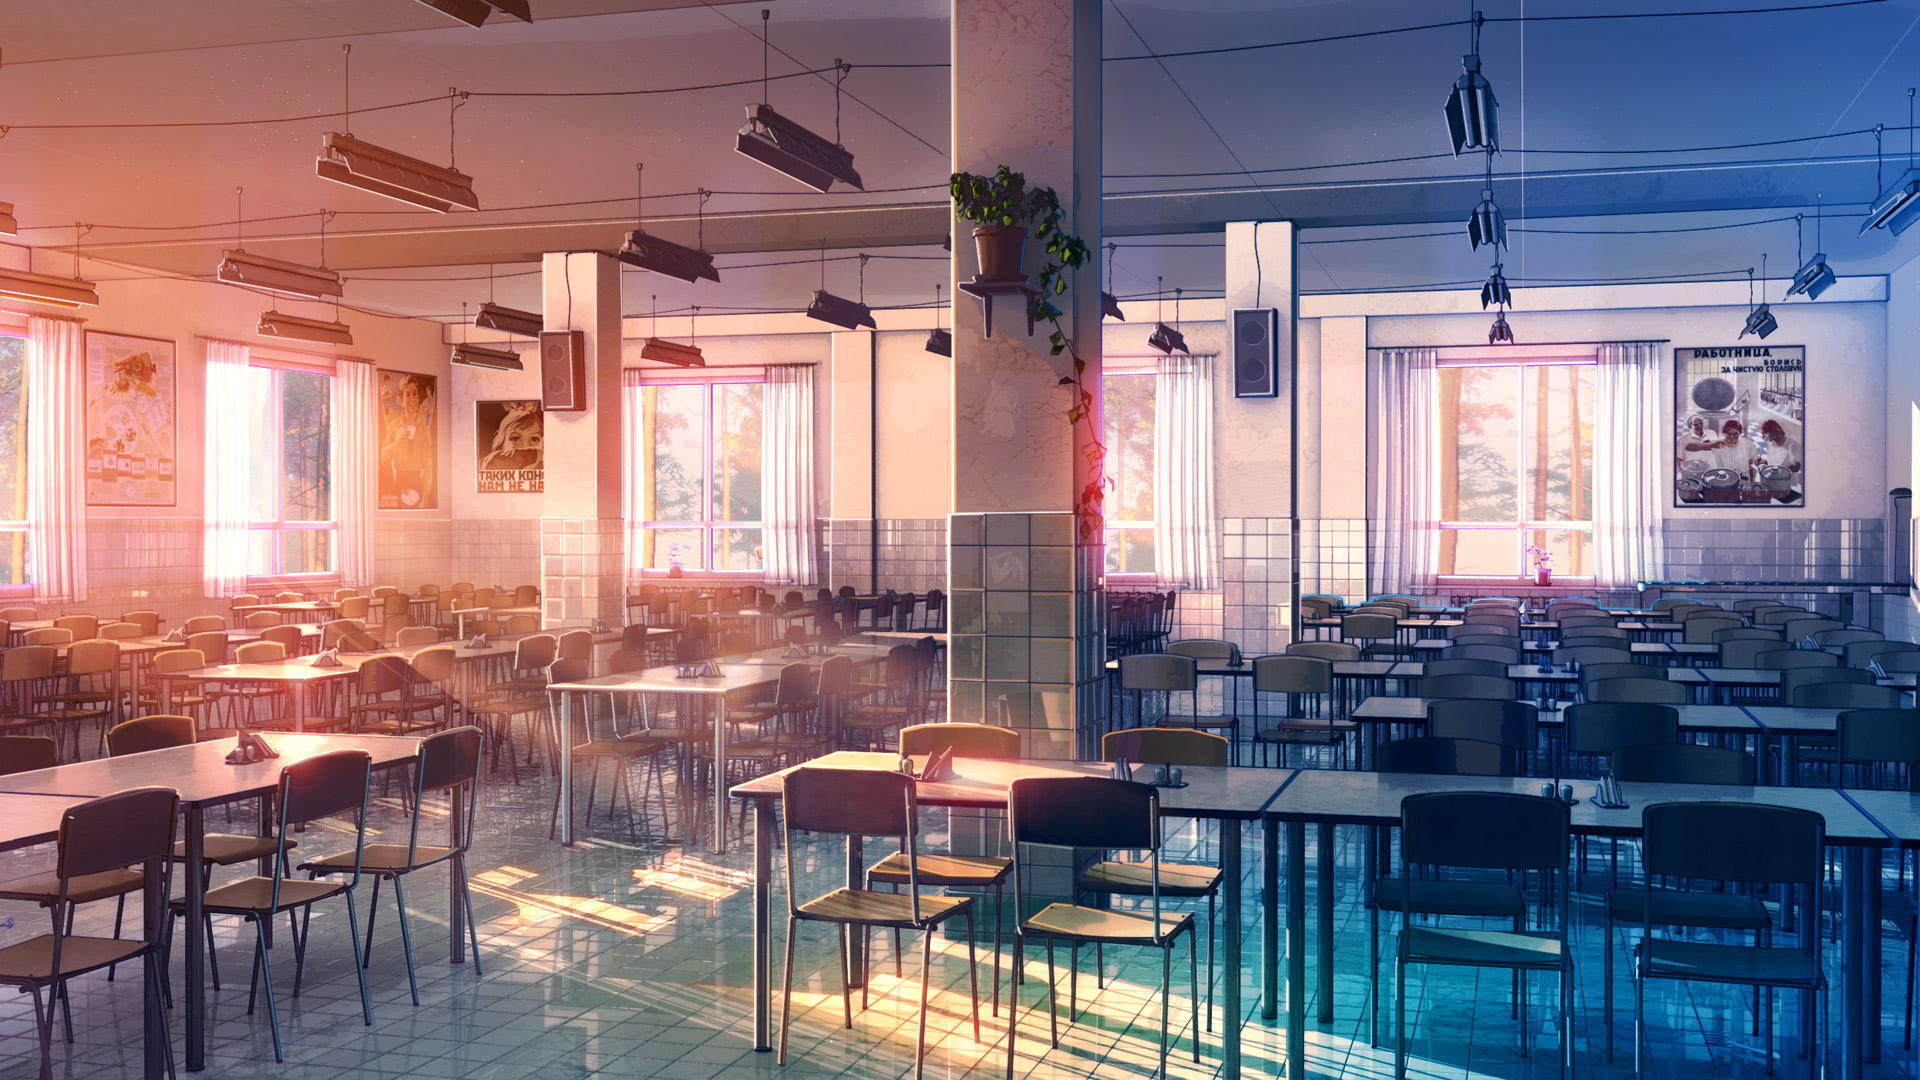 ANIME-ART-anime-scenery-school-cafeteria-tables-chairs-windows-sunlight-wallpaper-wpc5801730